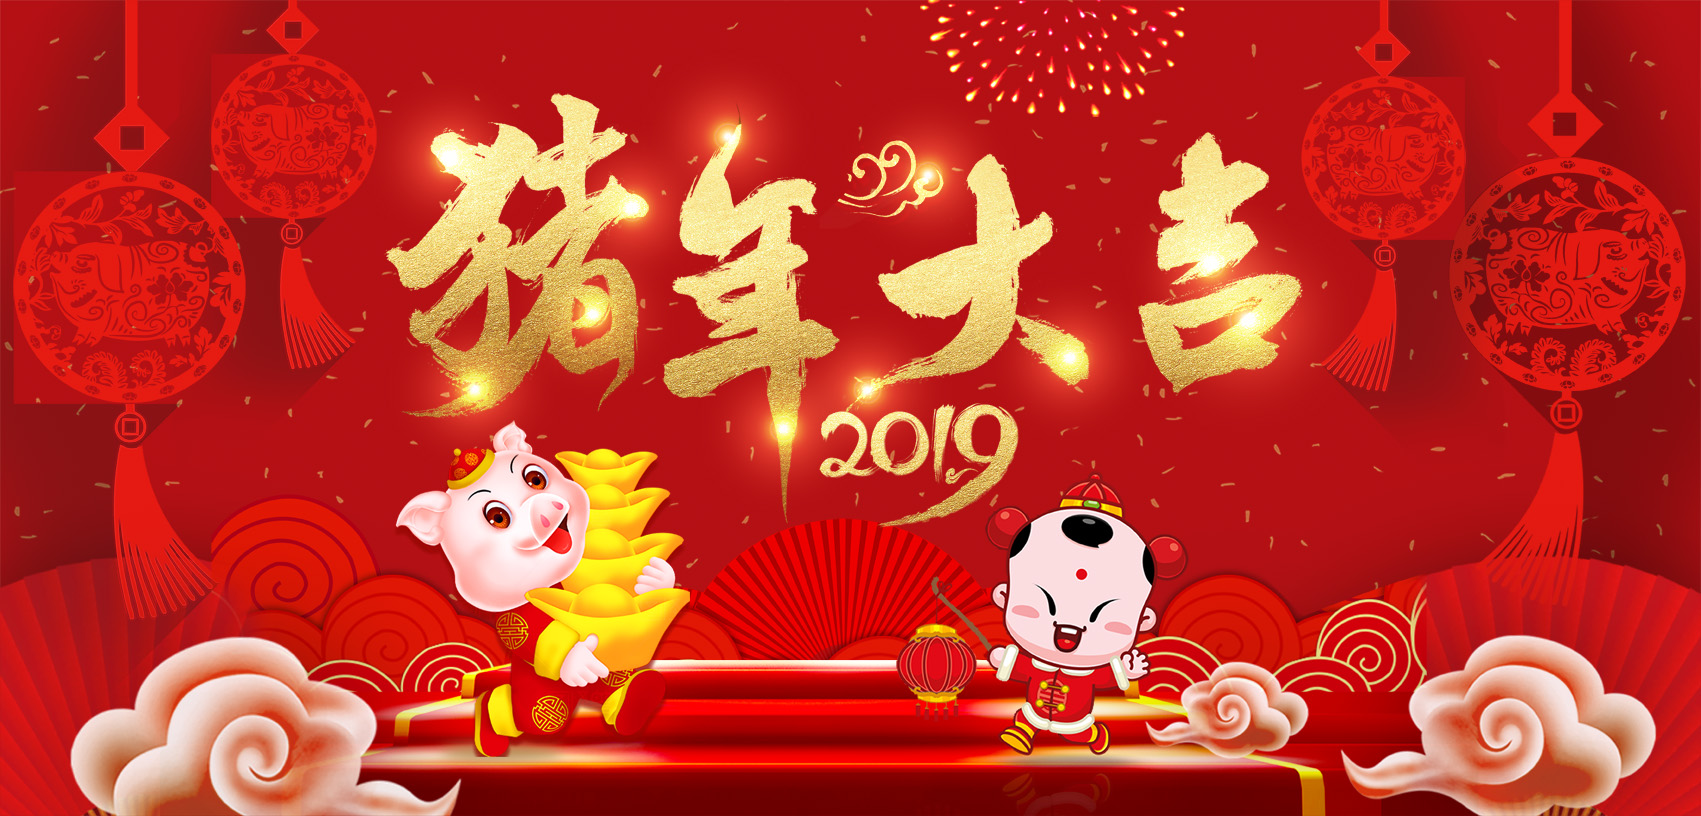 Toky Electrical Co.,Ltd will give you a New Year's greeting in advance!